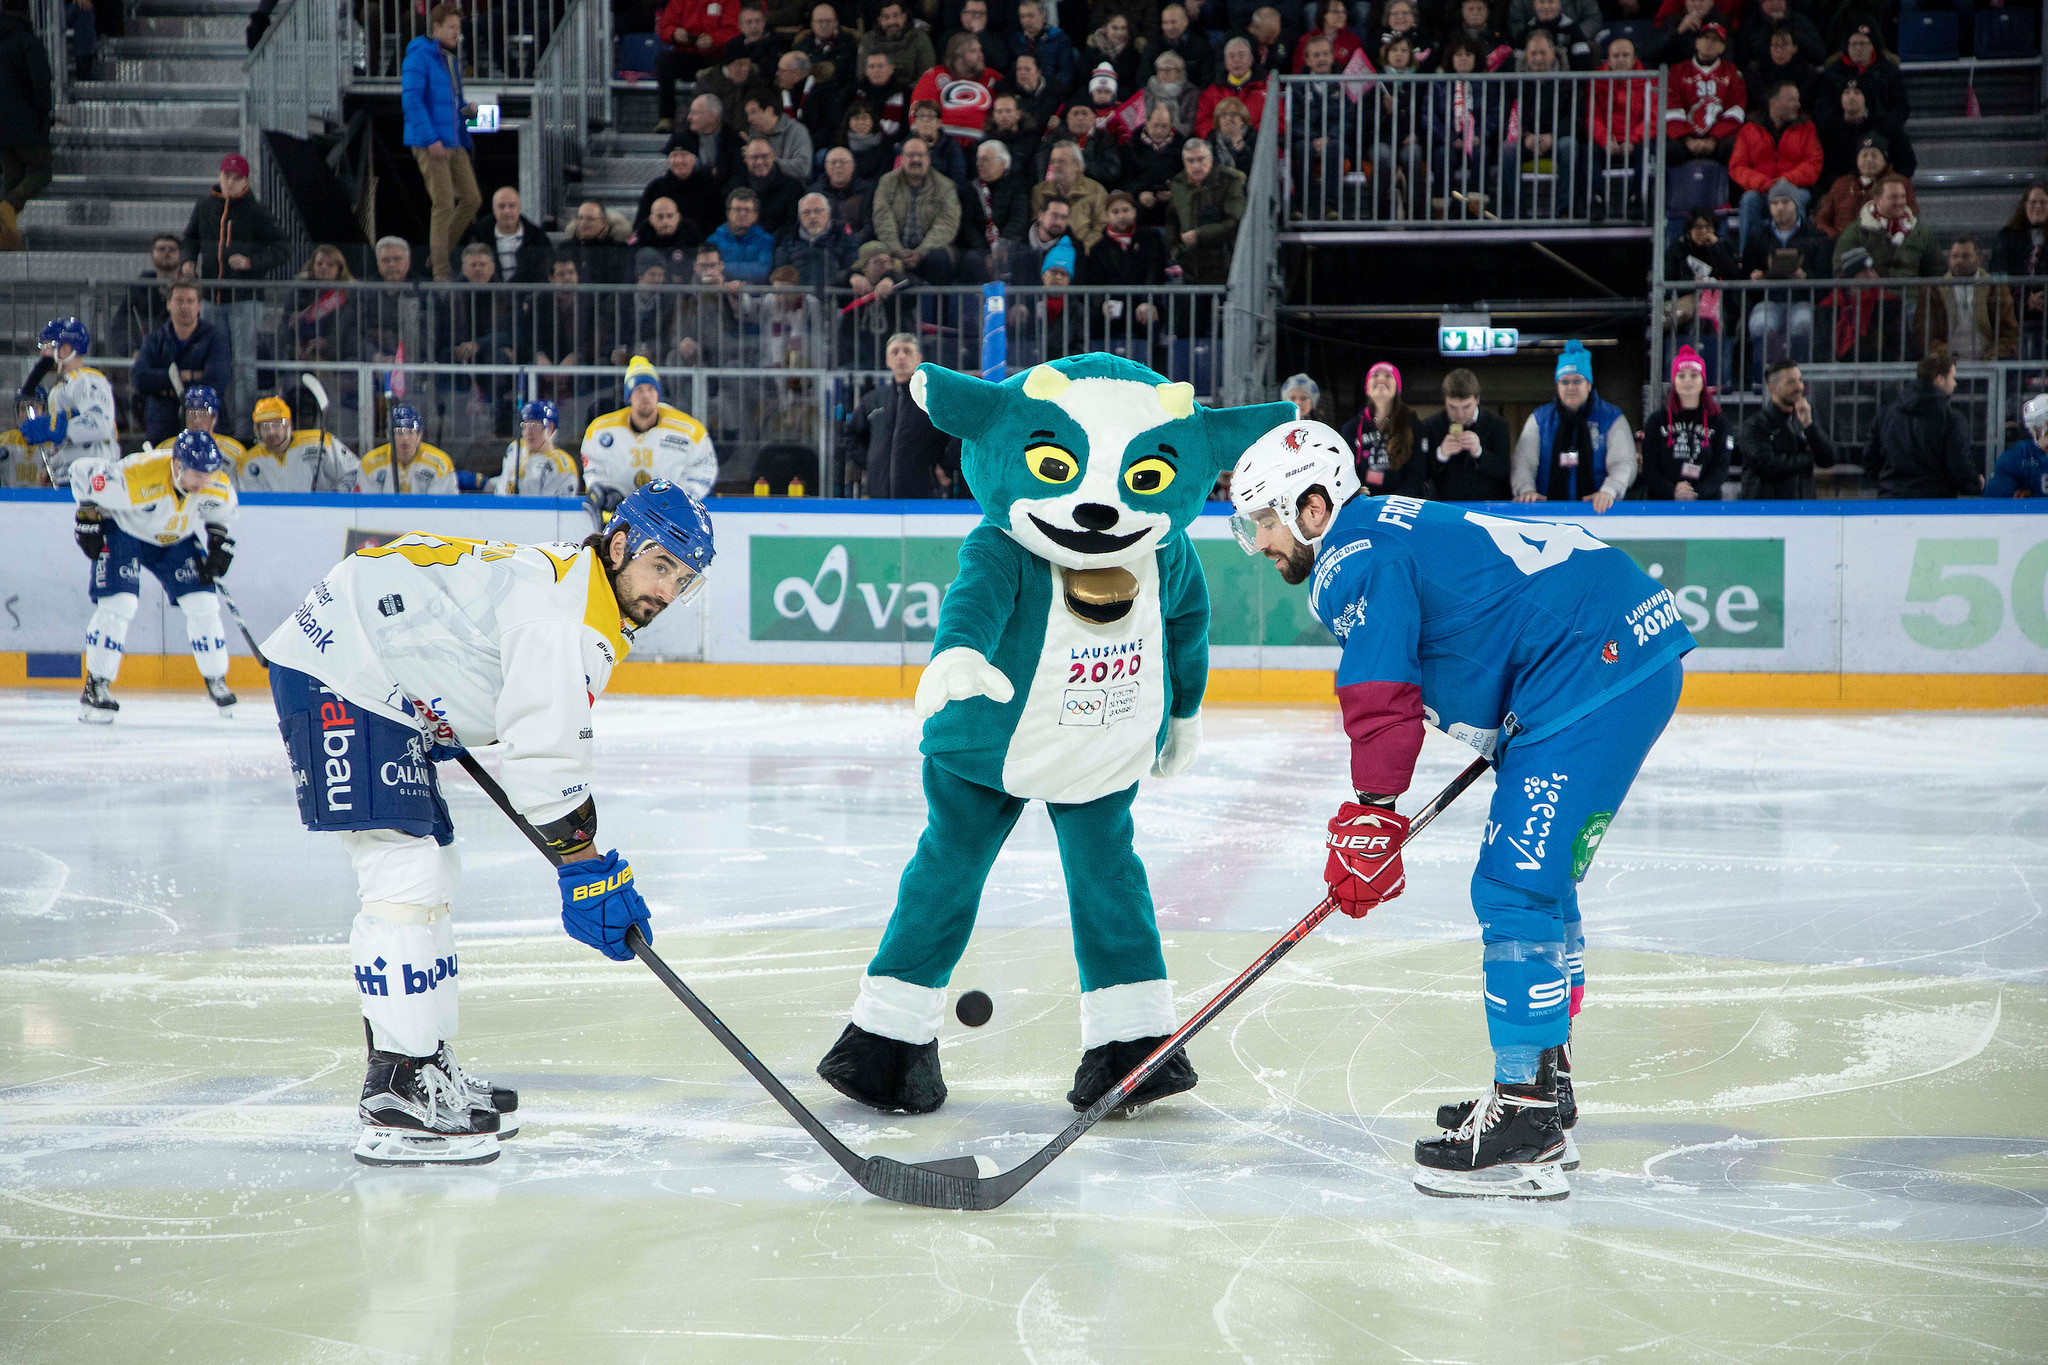 Lausanne 2020 unveiled their mascot, a cross between a dog, goat and cow, last week ©IOC